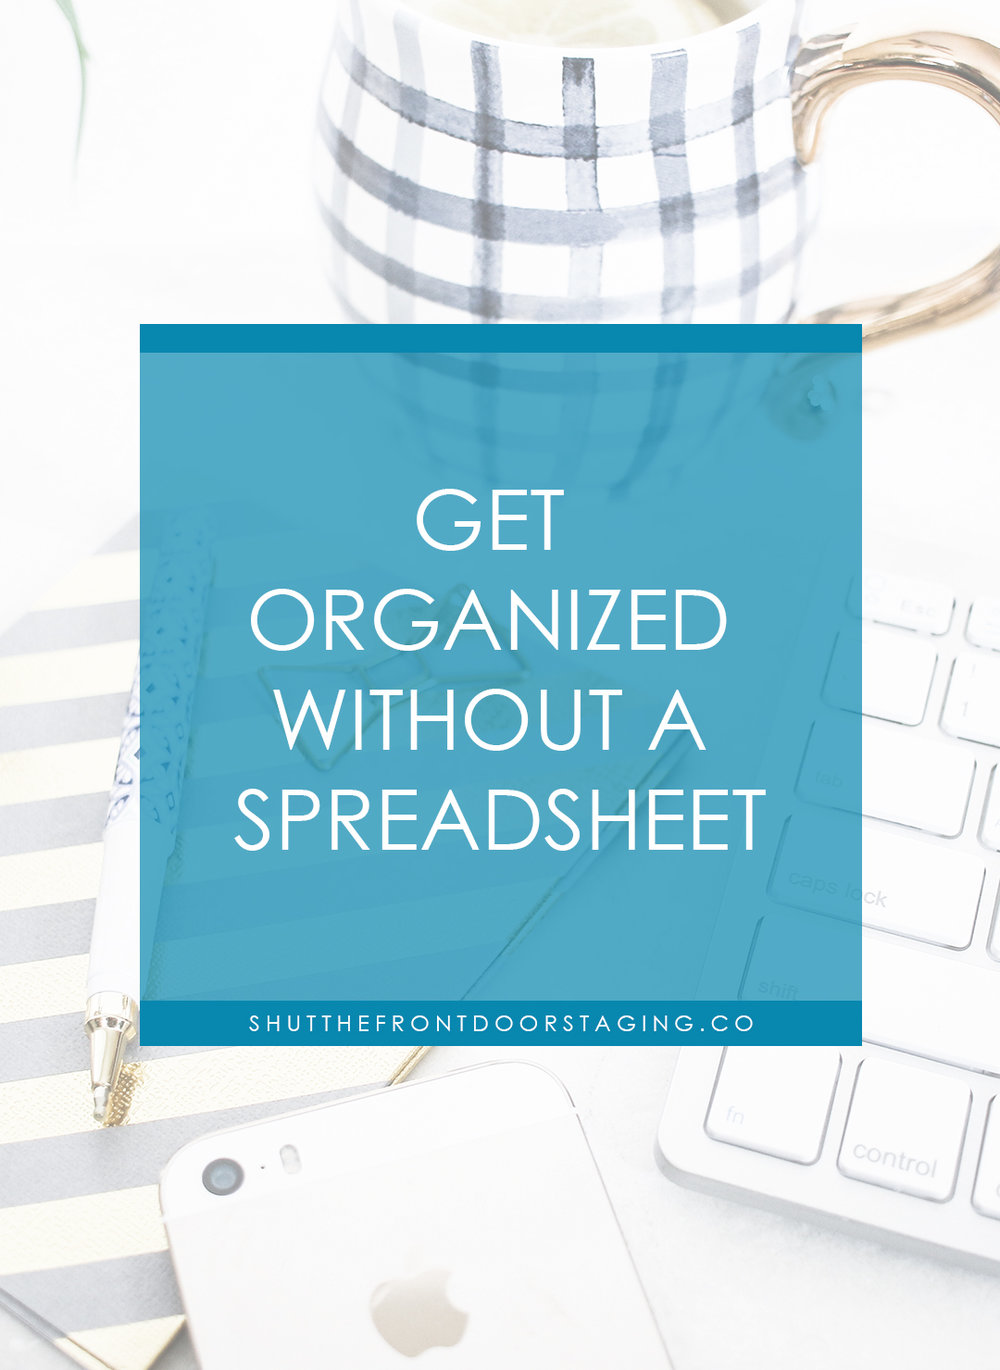 Get organized without a spreadsheet.jpg